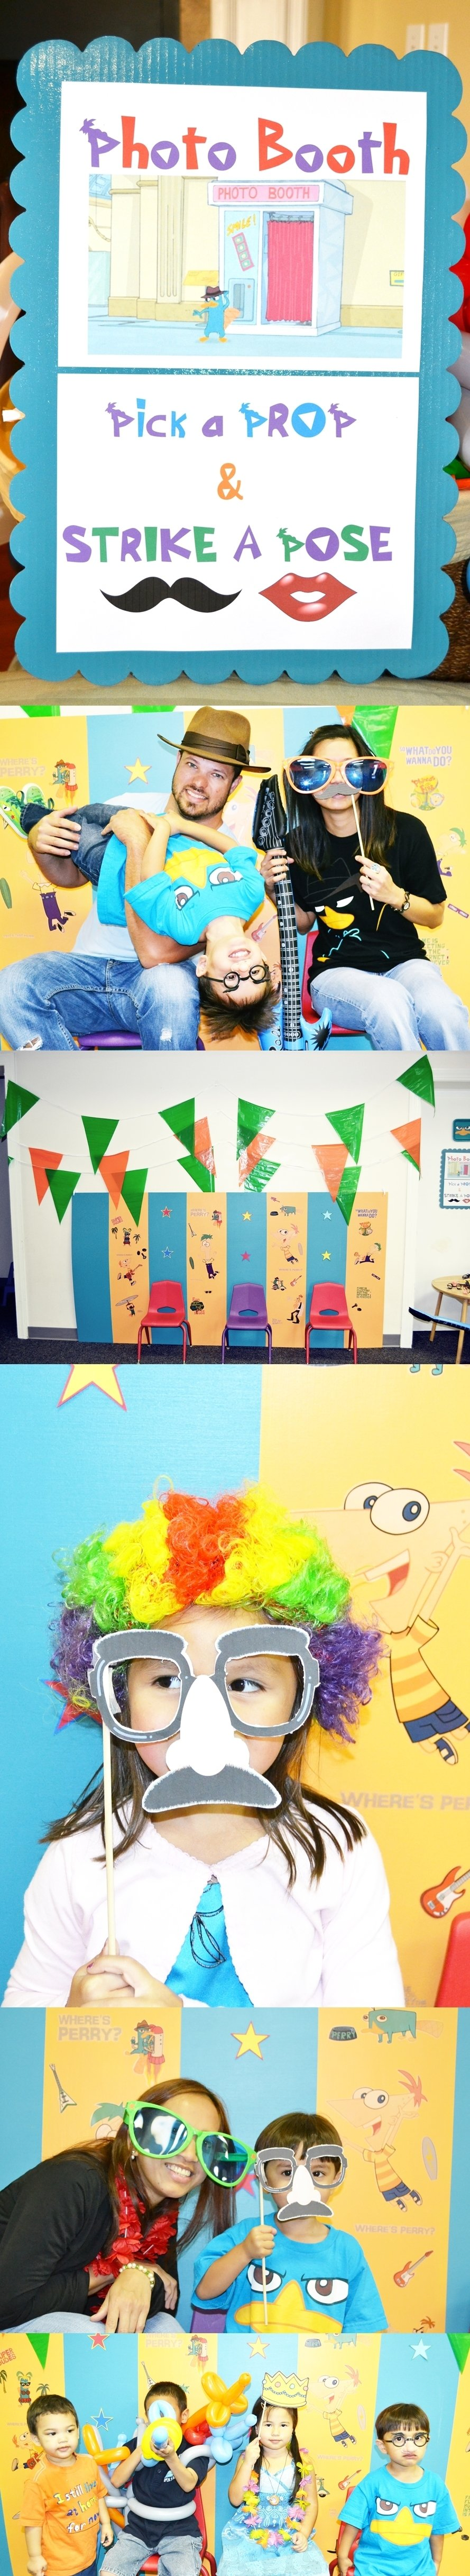 10 Most Popular Phineas And Ferb Party Ideas diy phineas and ferb photo booth lets party phineas and ferb 2020